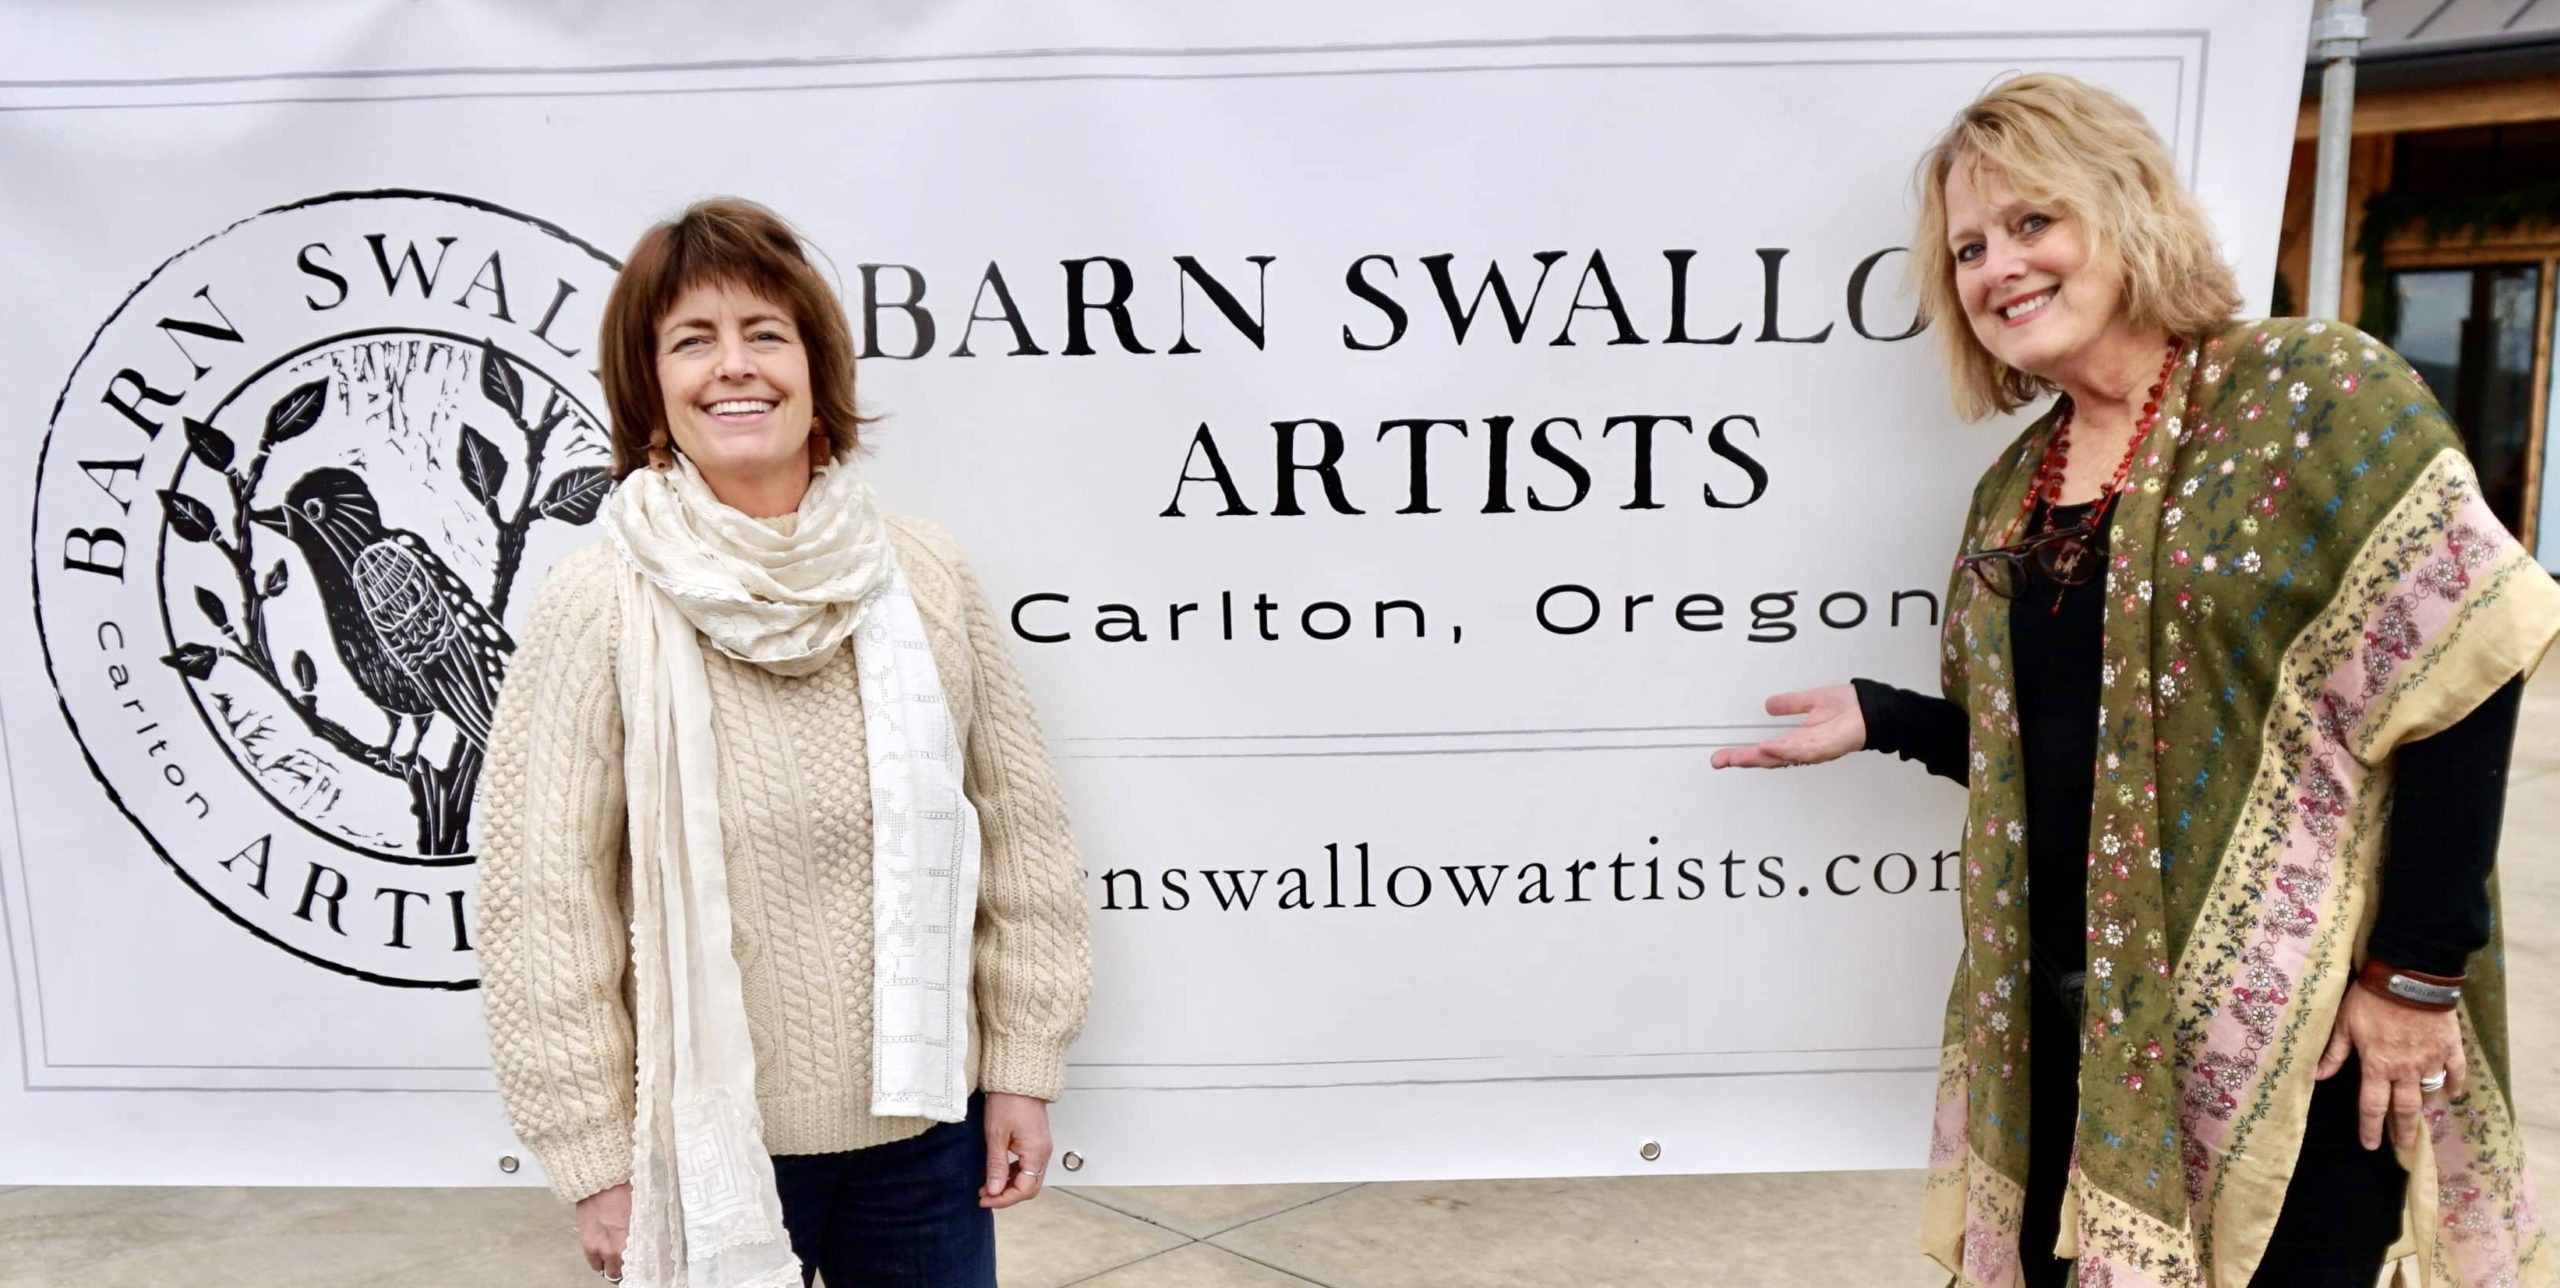 Laurie Lewis and Lynn Van Horn, Founders of Barn Swallow Artists